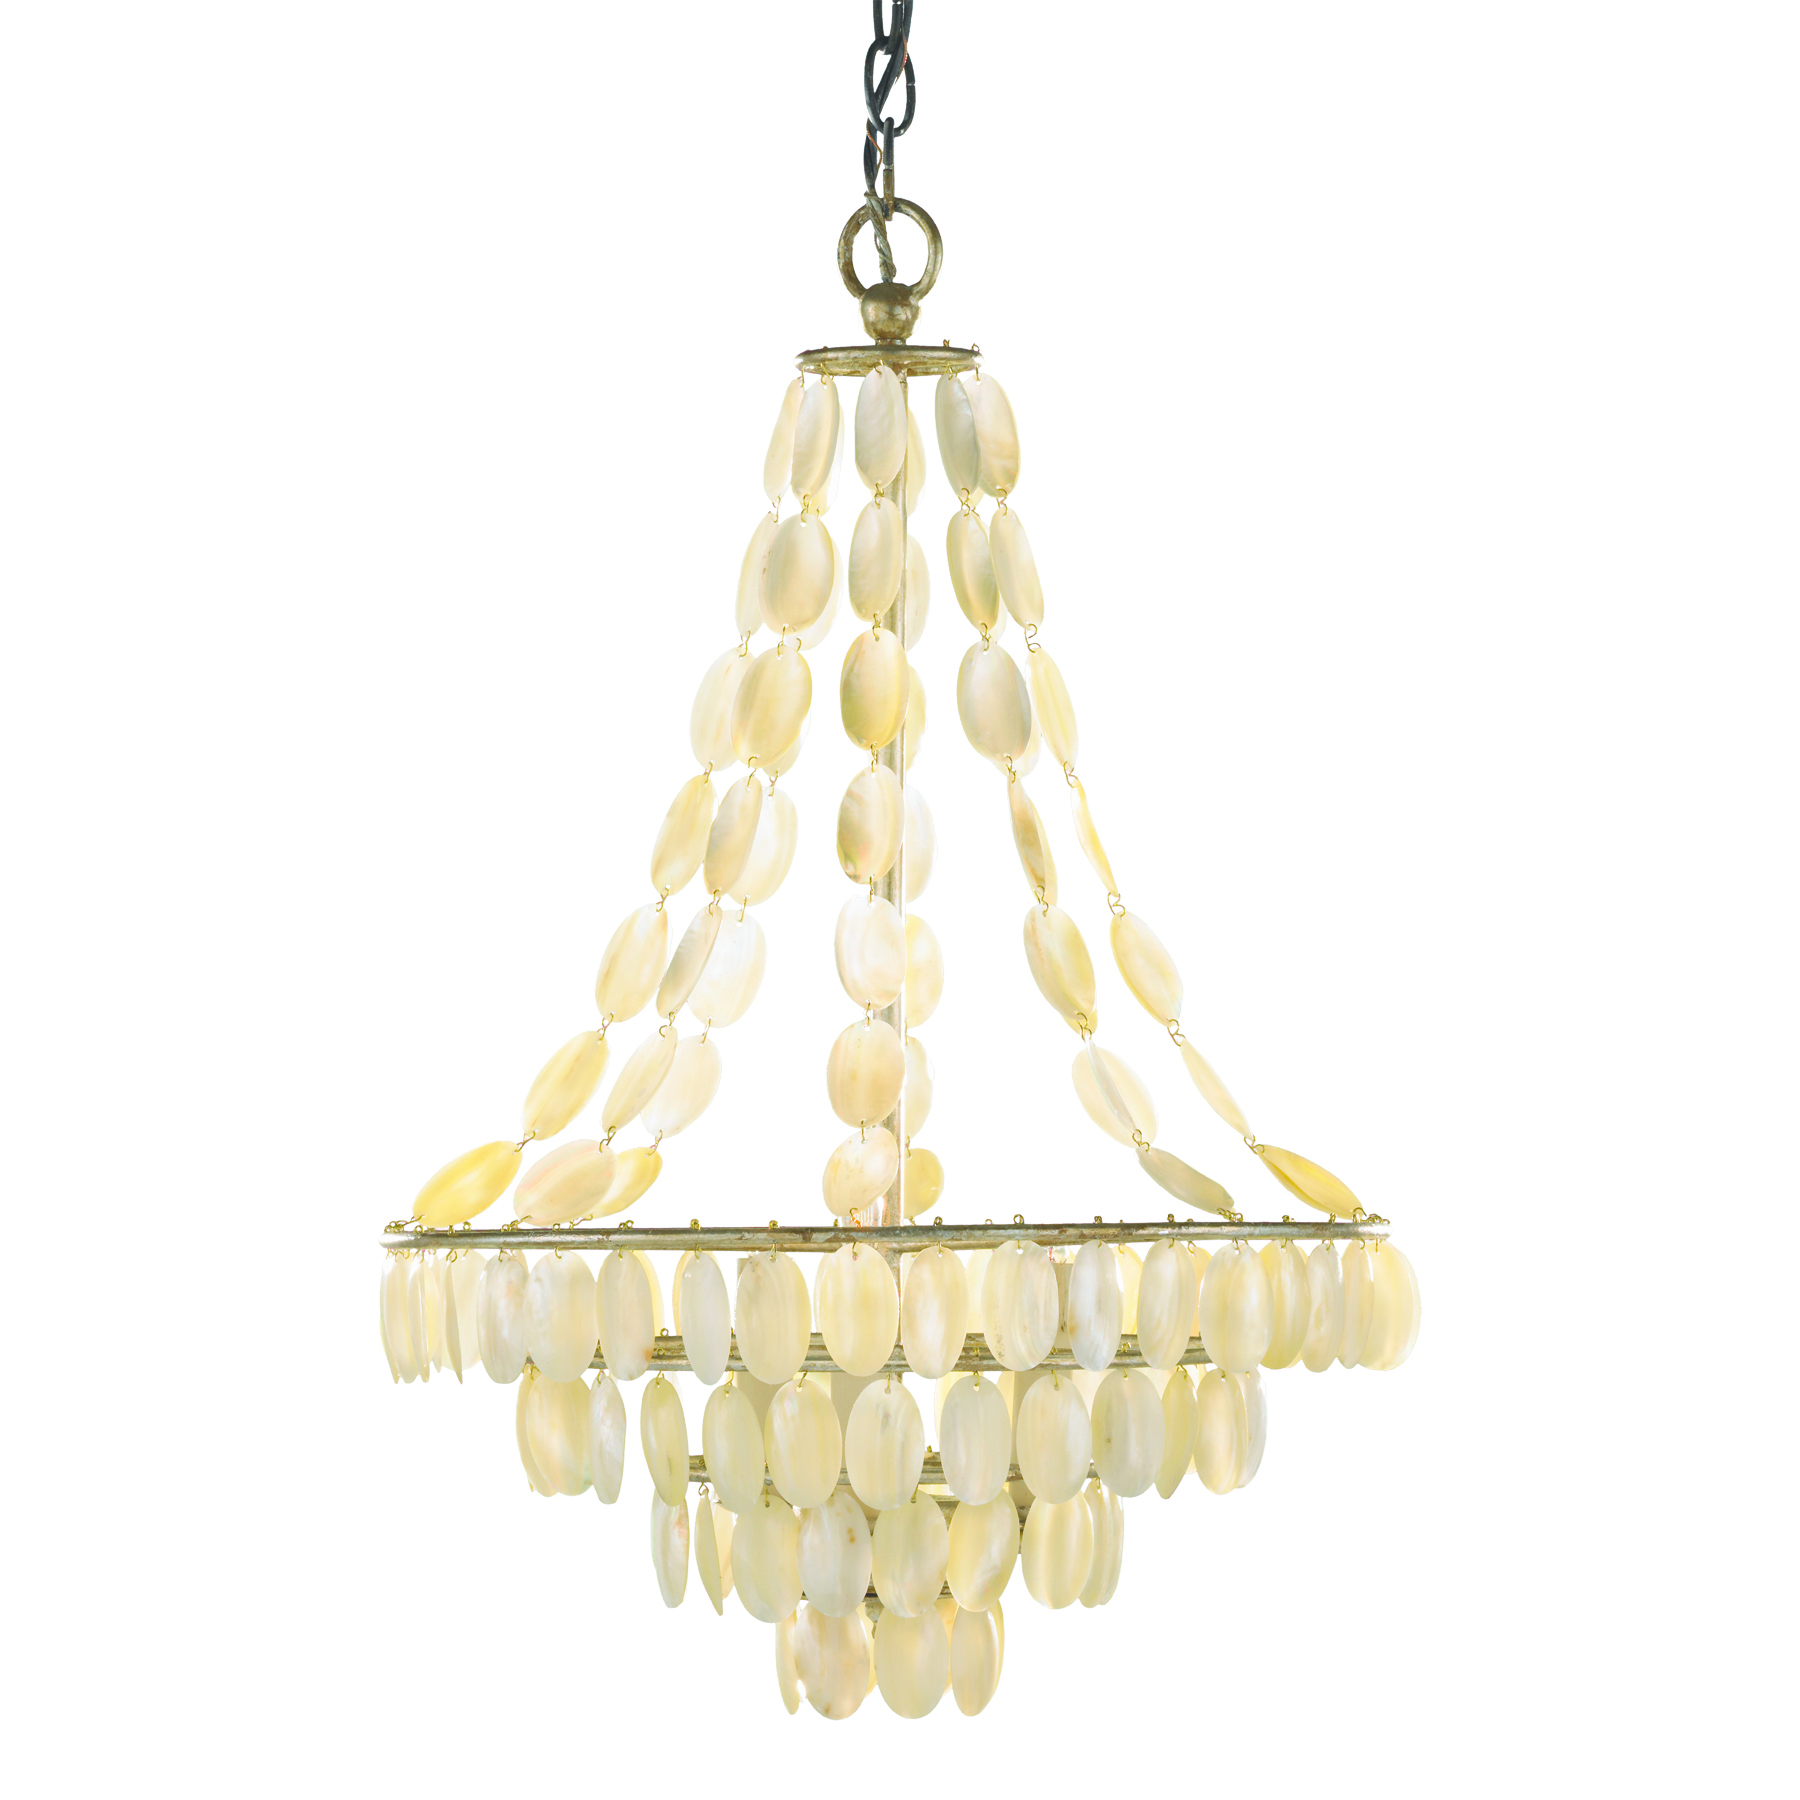 beautiful Southampton 3 Light Chandelier by Arteriors Lighting for home lighting ideas